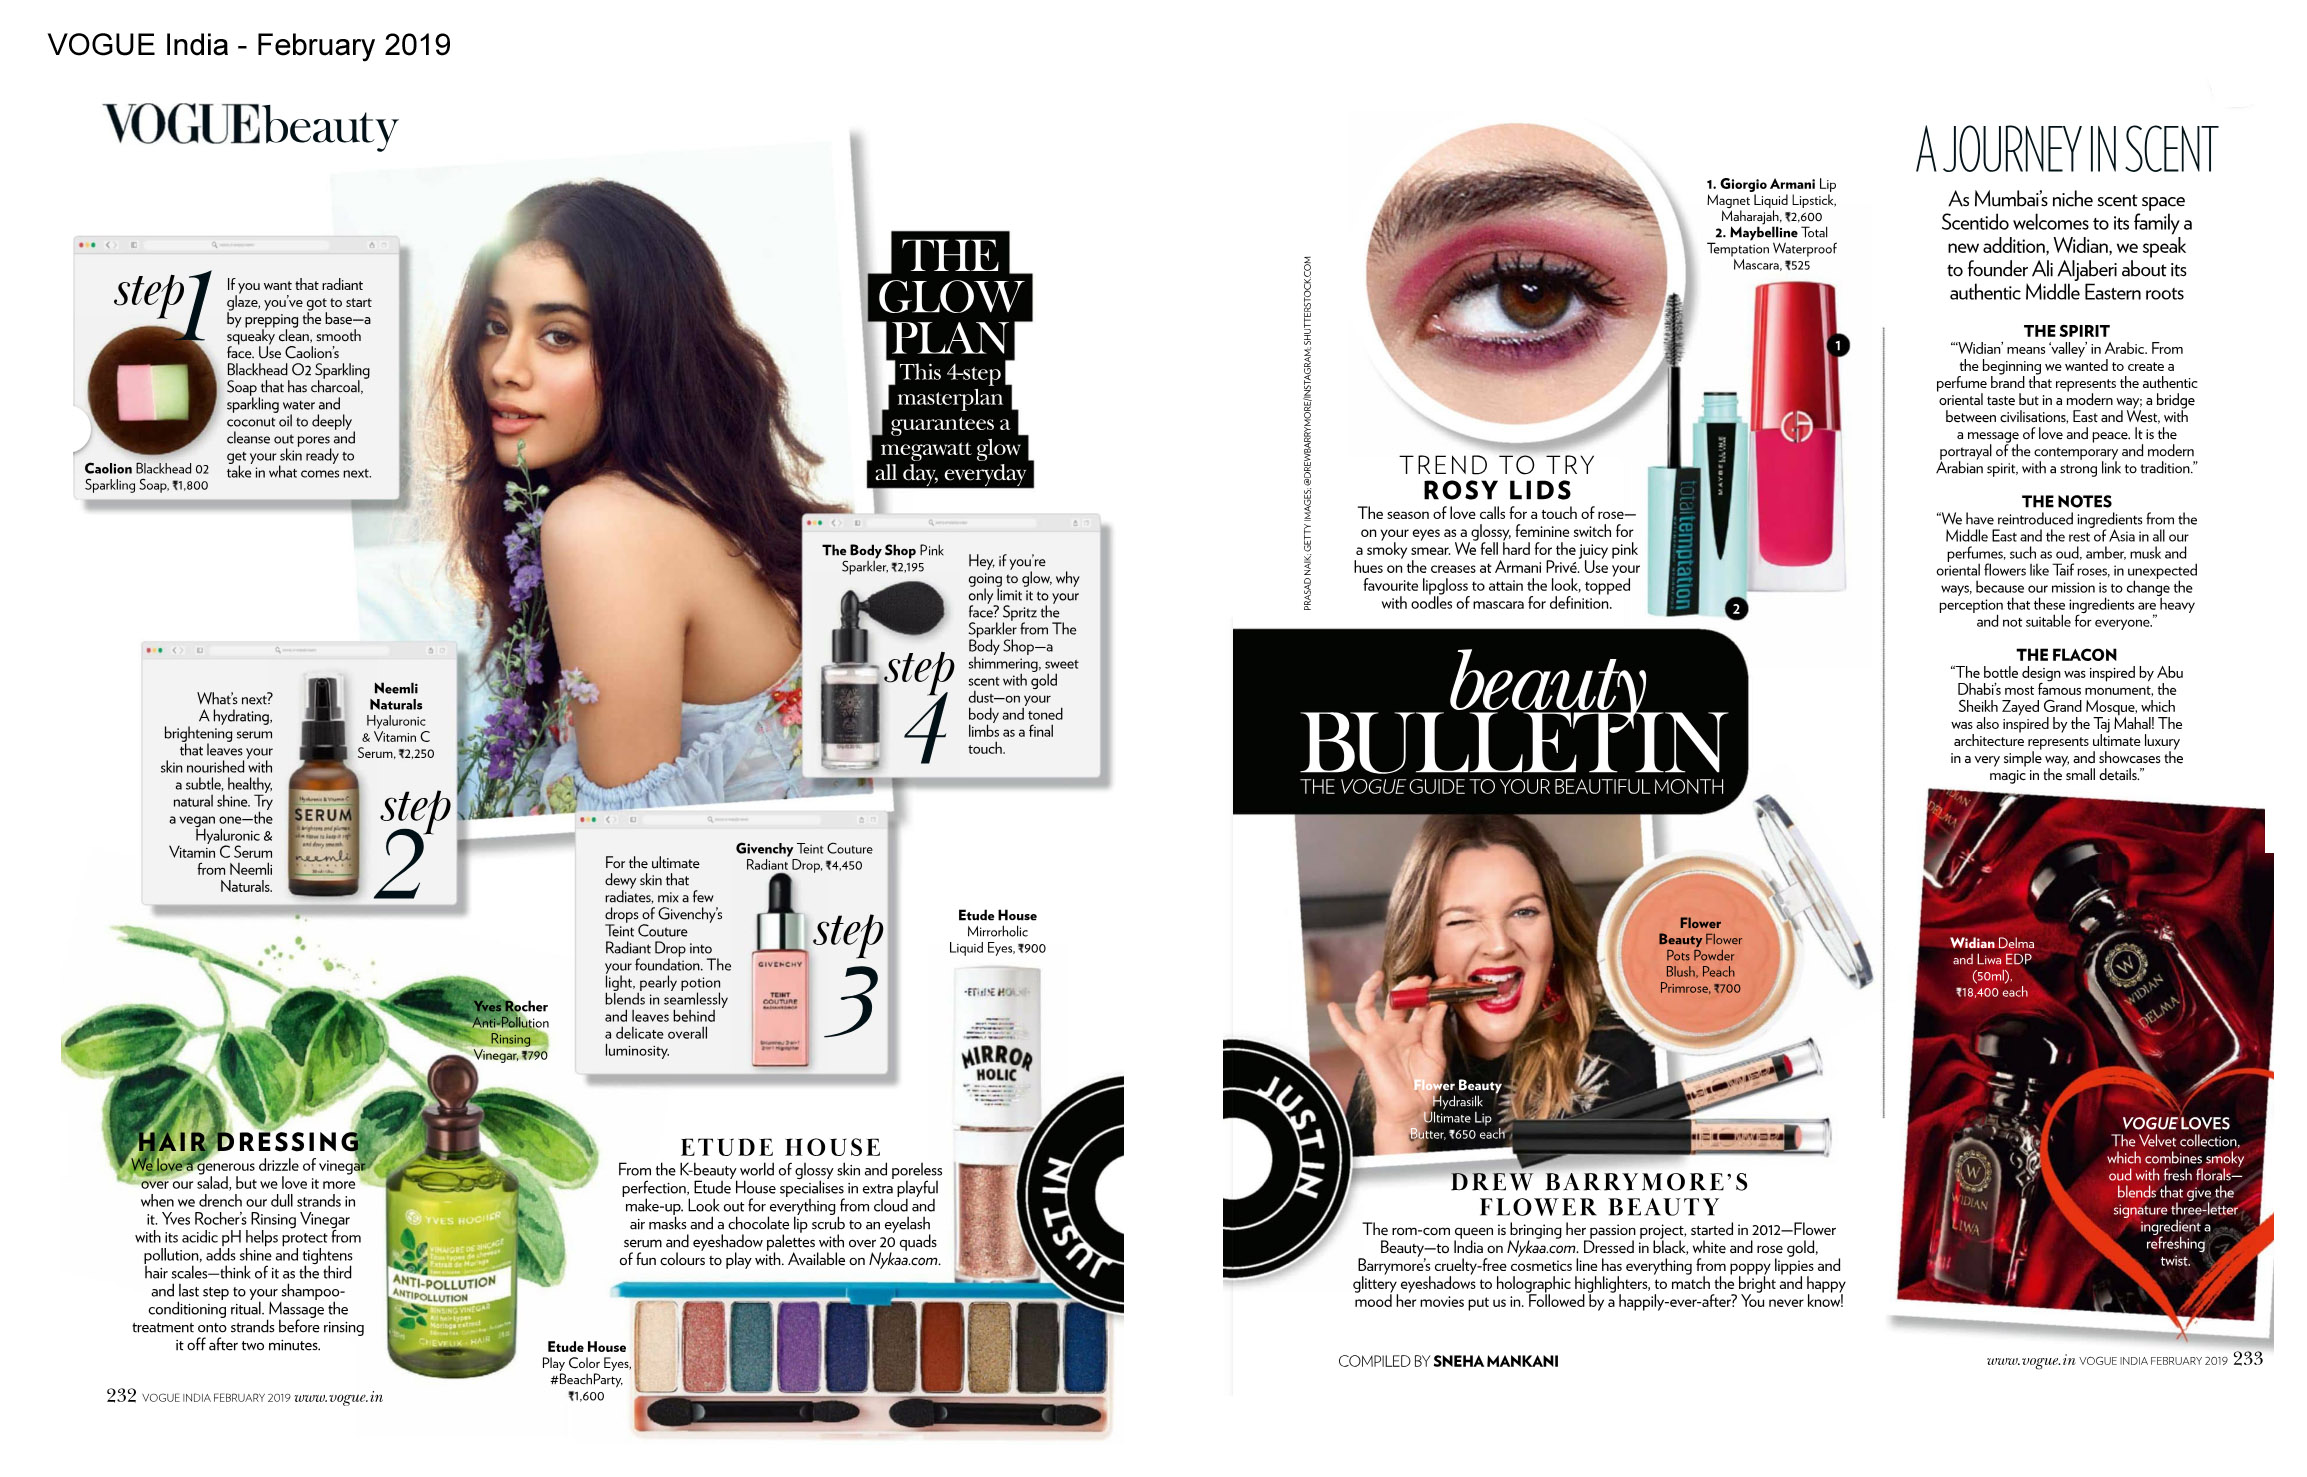 FLOWER BEAUTY LAUNCH IN VOGUE INDIA